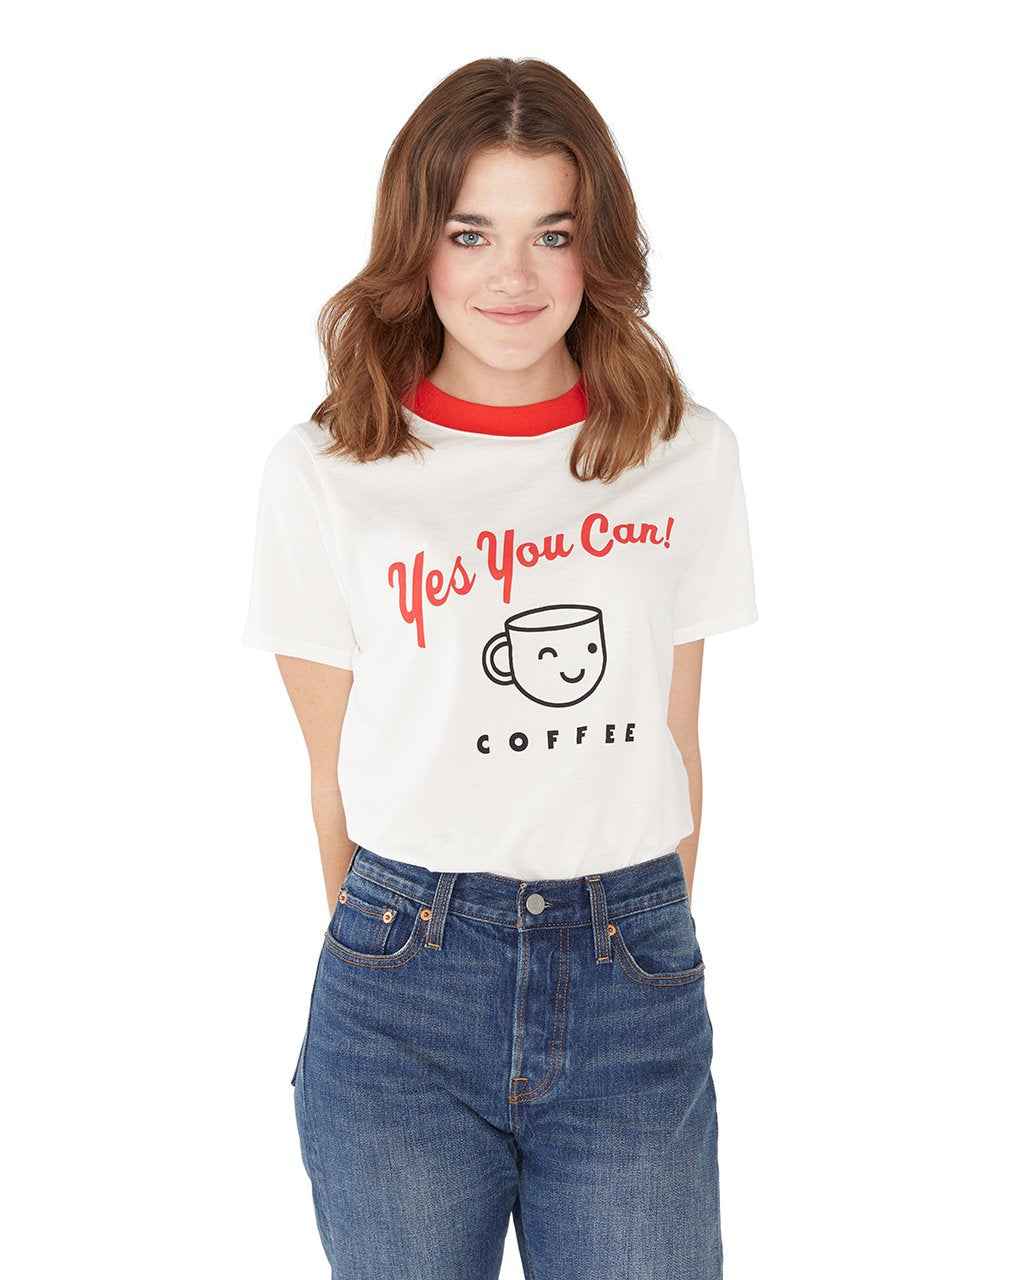 This tee comes in white, red ringer collar detail and 'Yes You Can' printed on the front.